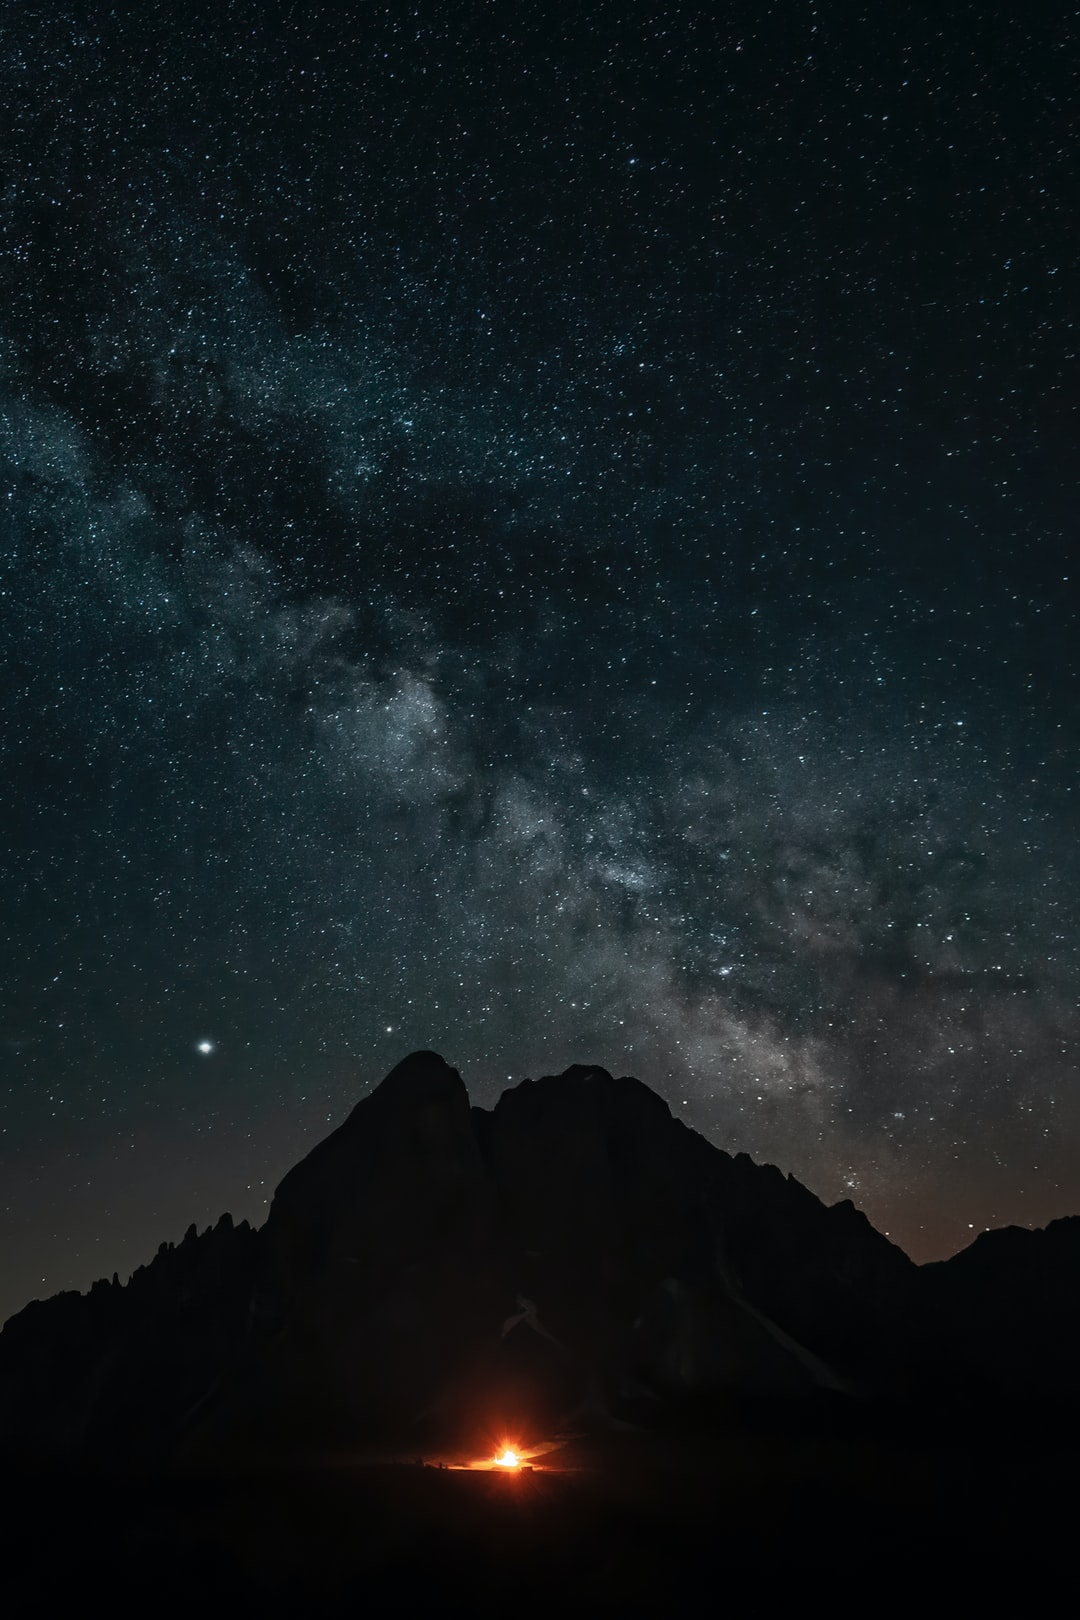 Milkyway over the peak Putia, Dolomites Nature Heritage, on June 30th, 2019!